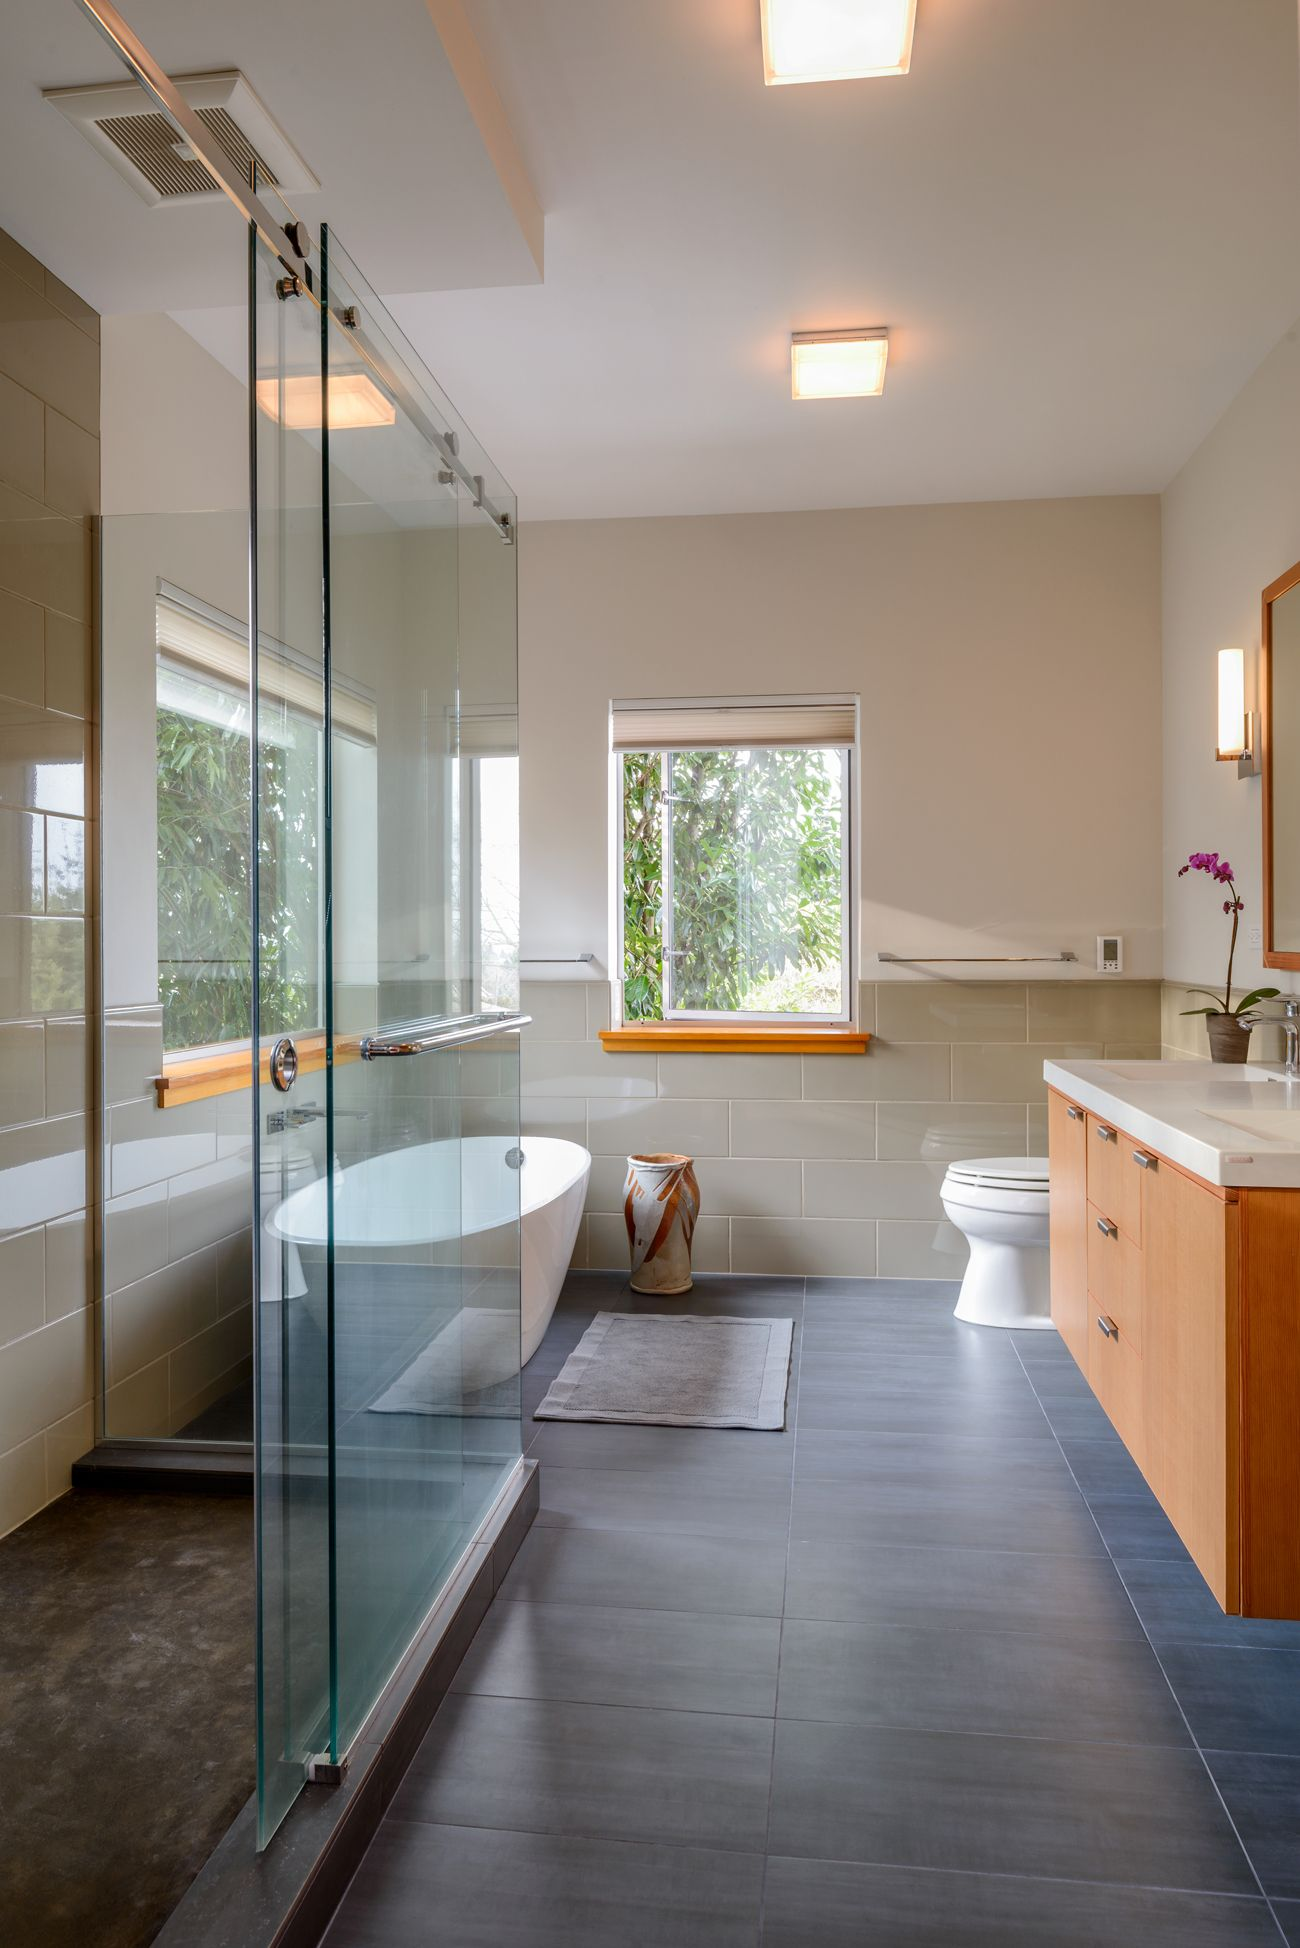 Bathroom Remodel Seattle seward park bathroom remodel | seattle | modern bathroom